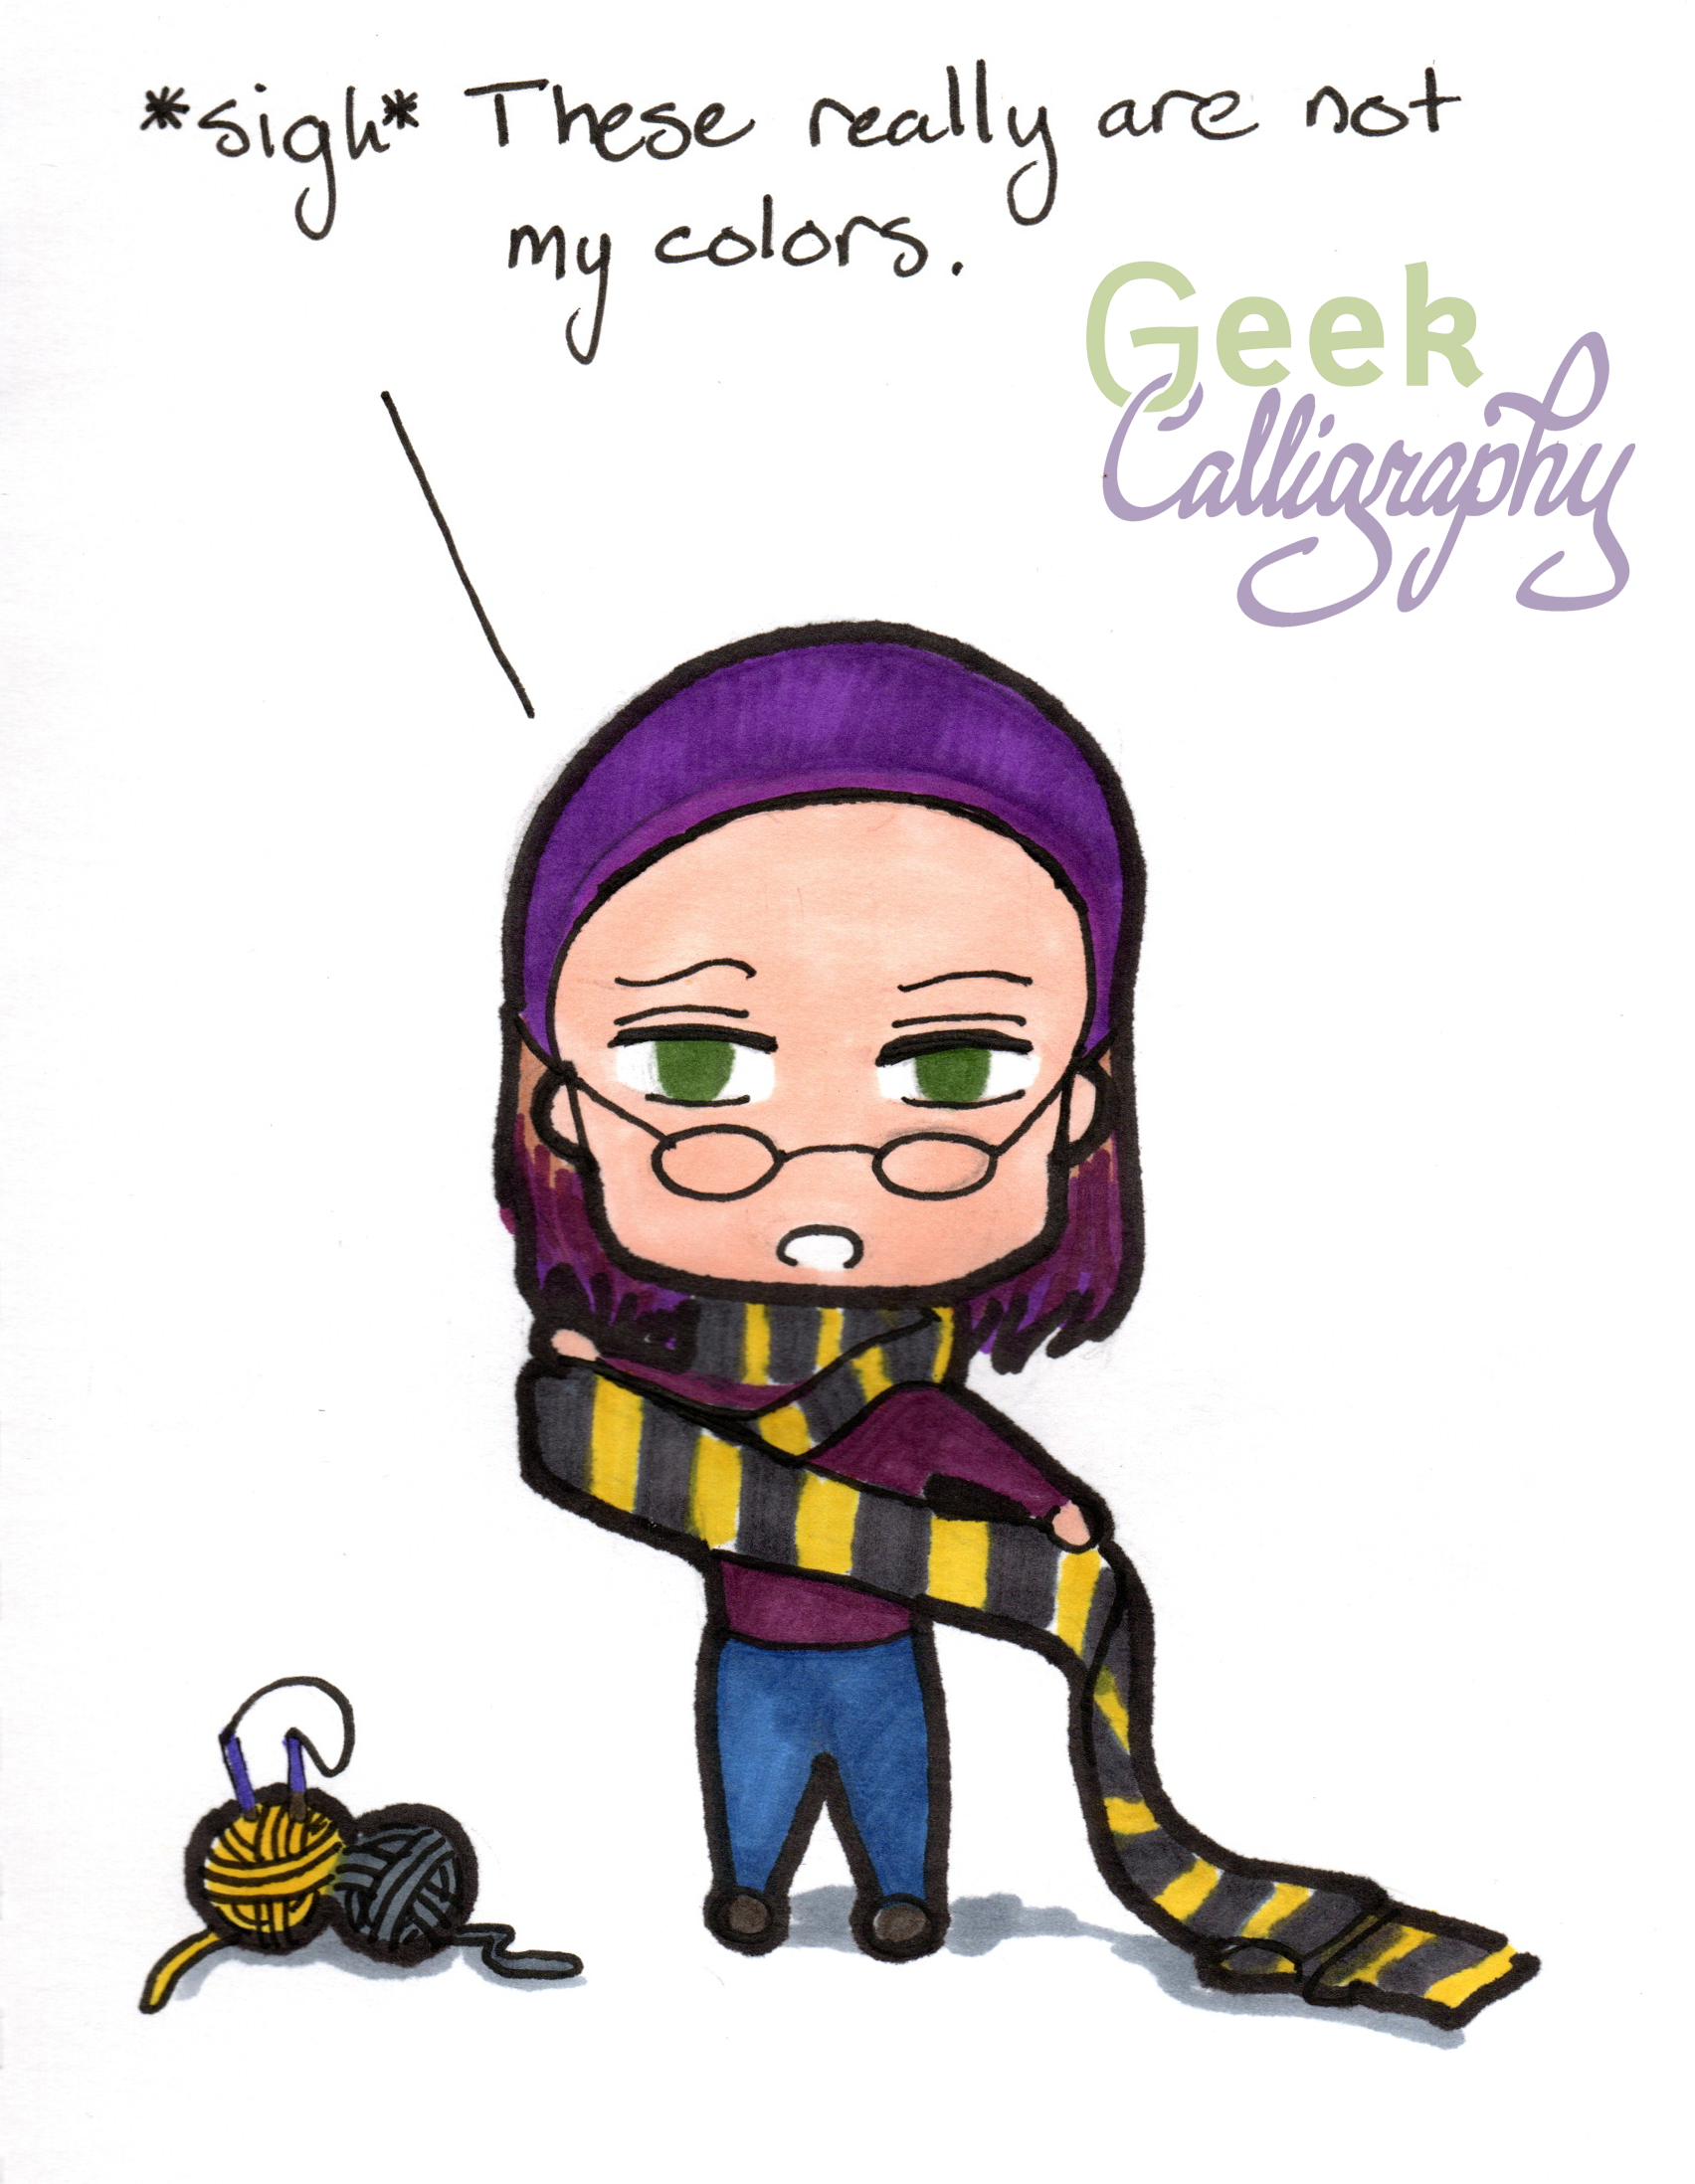 """Chibi Terri holds out her Hufflepuff scarf and muses, """"*sigh* These are really not my colors."""""""